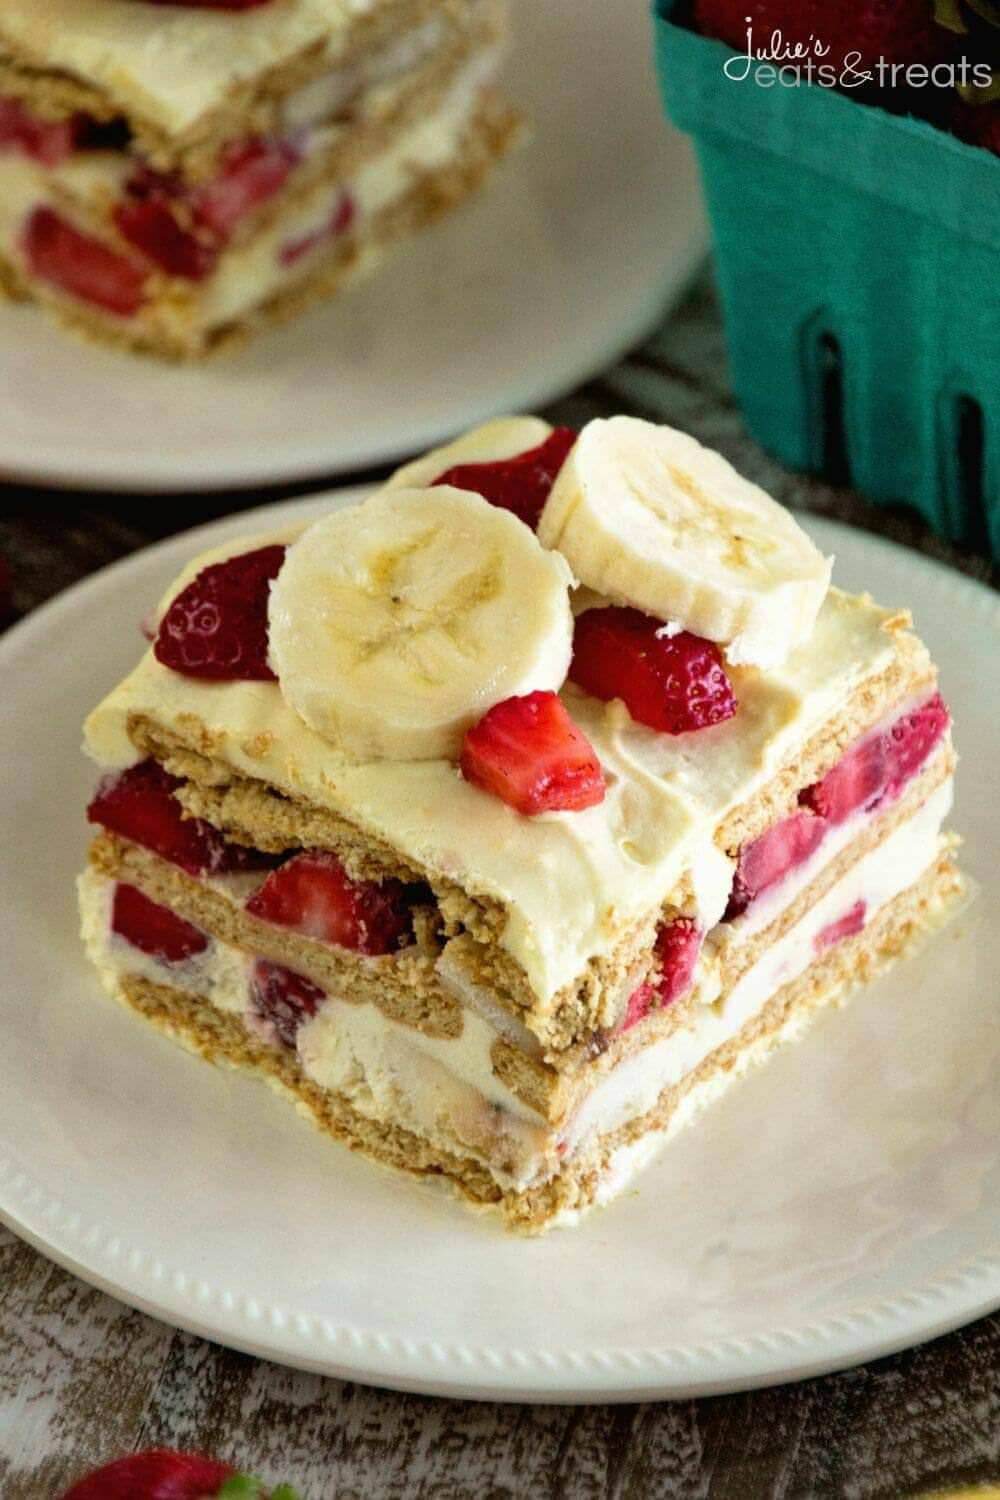 Skinny Strawberry Banana Ice Box Cake Recipe ~ Easy, Traditional Ice Box Cake Recipe Stuffed with Bananas, Strawberries, Graham Crackers and Vanilla Pudding! Plus it's Lightened Up for a Guilt Free Dessert!